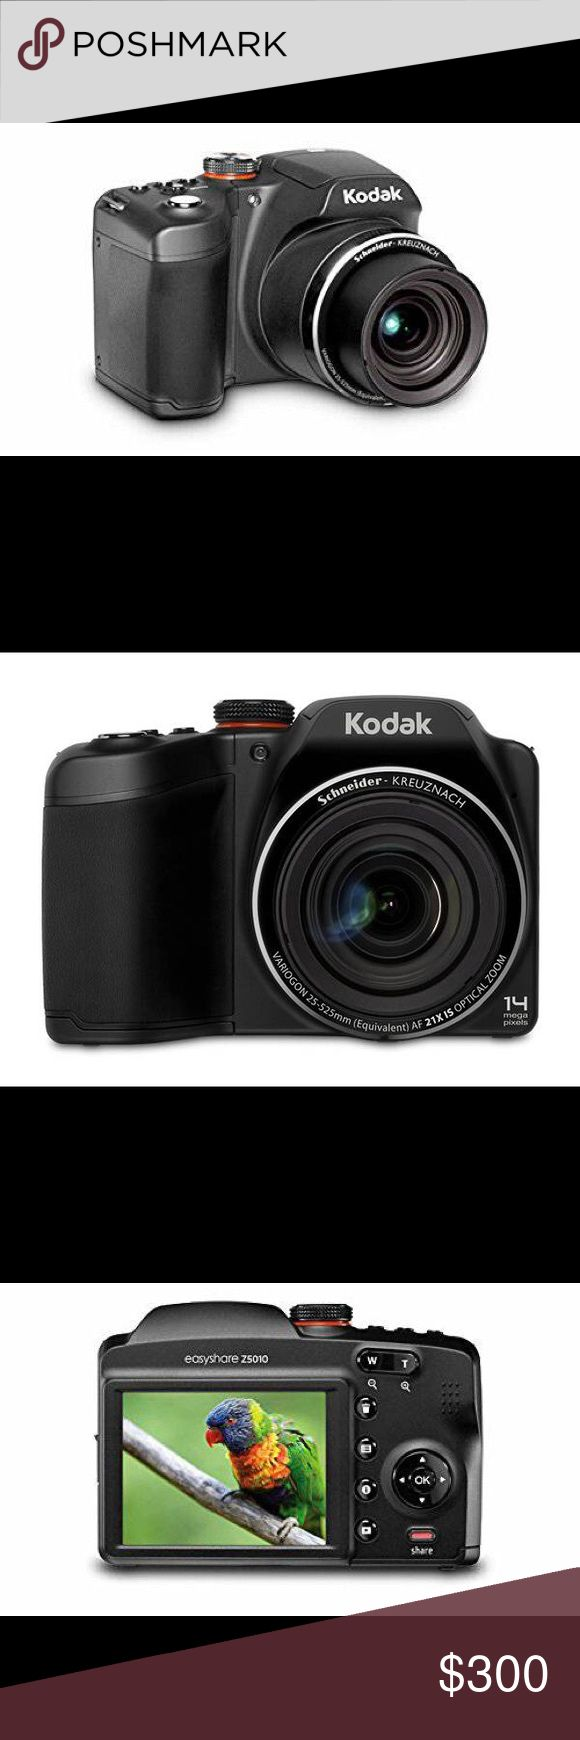 """Kodak EasyShare Z5010 Digital Camera- professional Gently used Kodak EasyShare Z5010 Digital Camera with 21x Optical Zoom in color BLACK.  - 14 megapixels -SCHNEIDER-KREUZNACH, 21X Optical Zoom with Optical Image Stabilization -25mm Wide Angle Lens - 3"""" Bright LCD -Kodak's Smart Capture Technology  I will include: -travel case -rechargeable batteries -rechargeable battery charger -protective lens cover -one memory card ($600 value!)   selling b/c I just purchased a new camera! I am pretty…"""